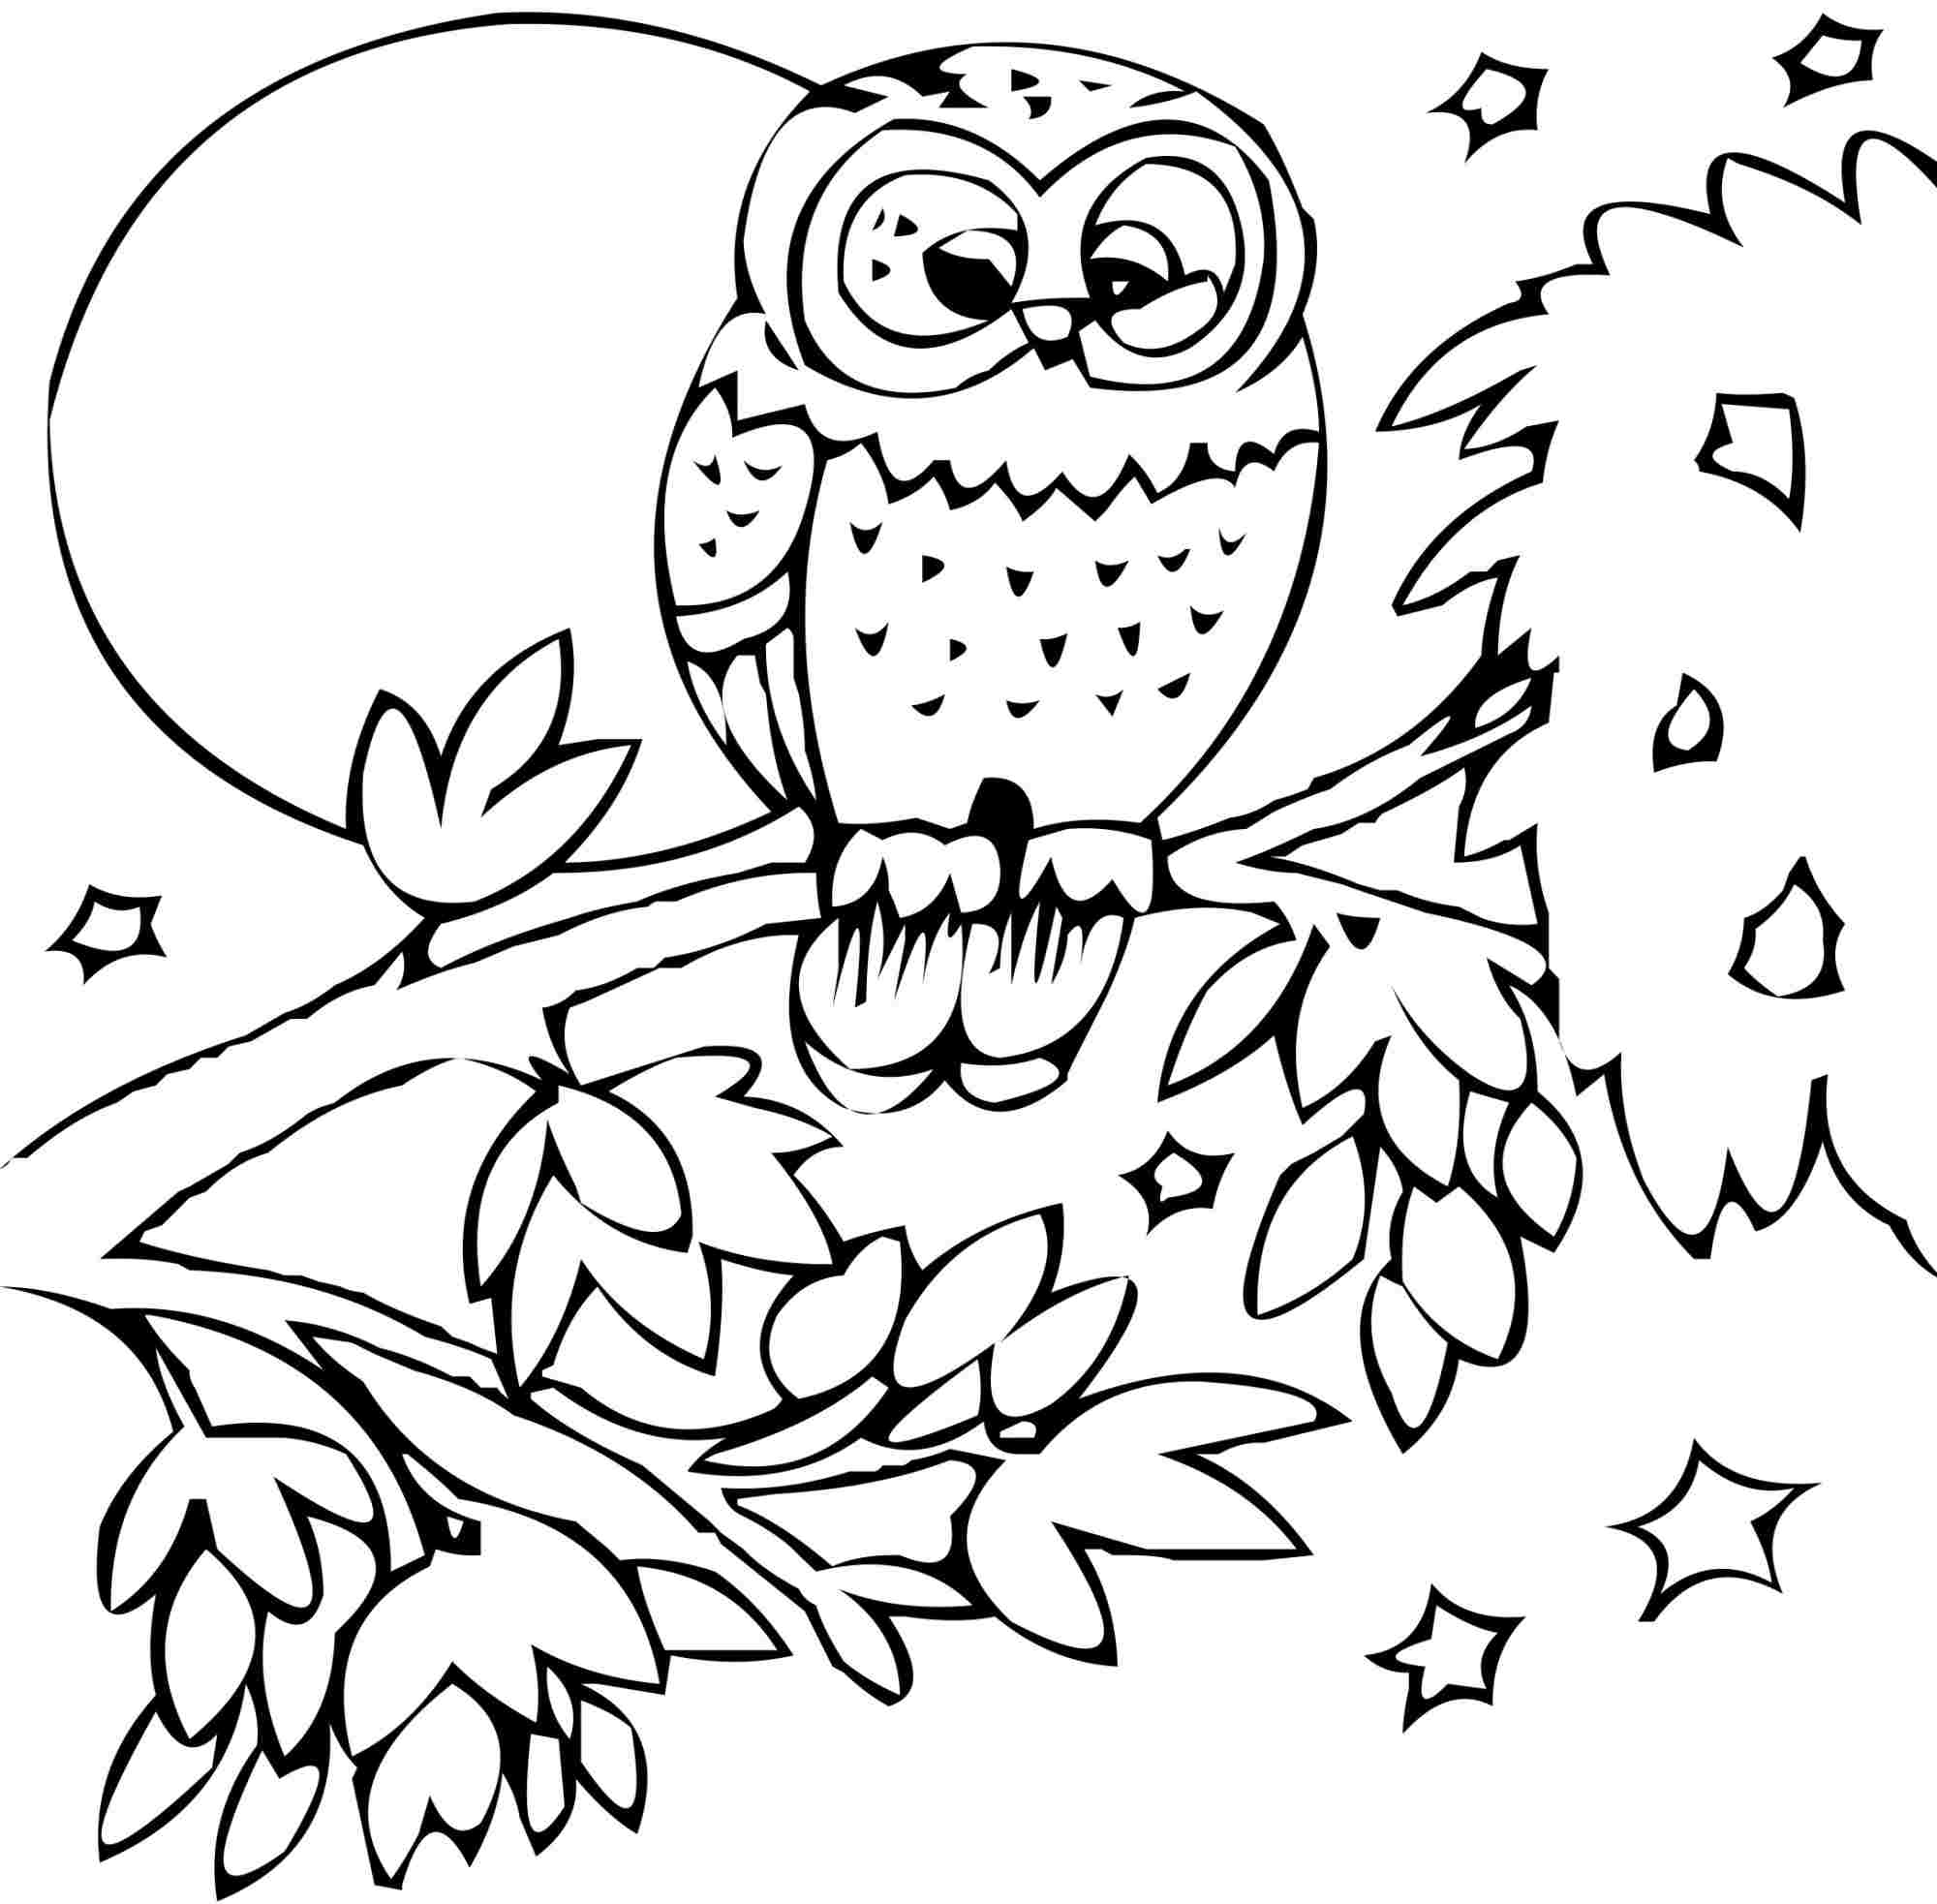 2000x1966 Surprise Printable Colouring Pages Of Animals Helpful Free Animal